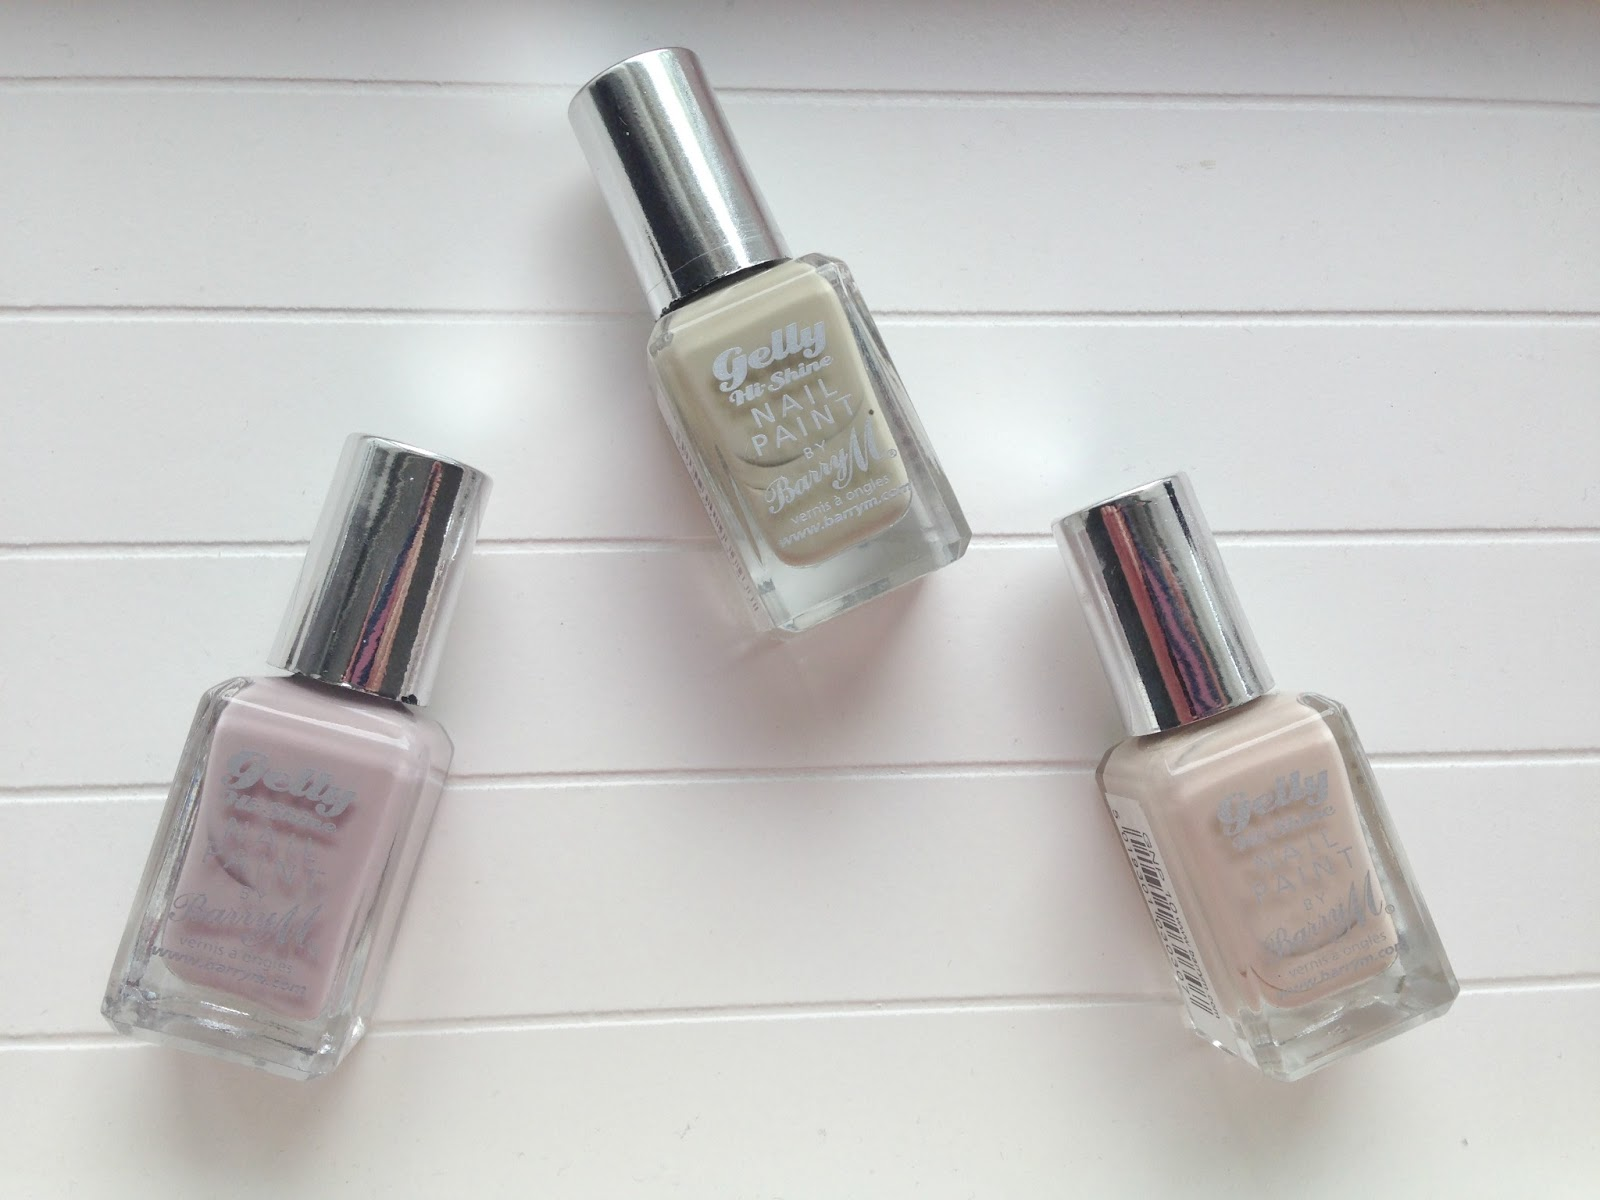 barry m gelly polishes nude lychee almond olive